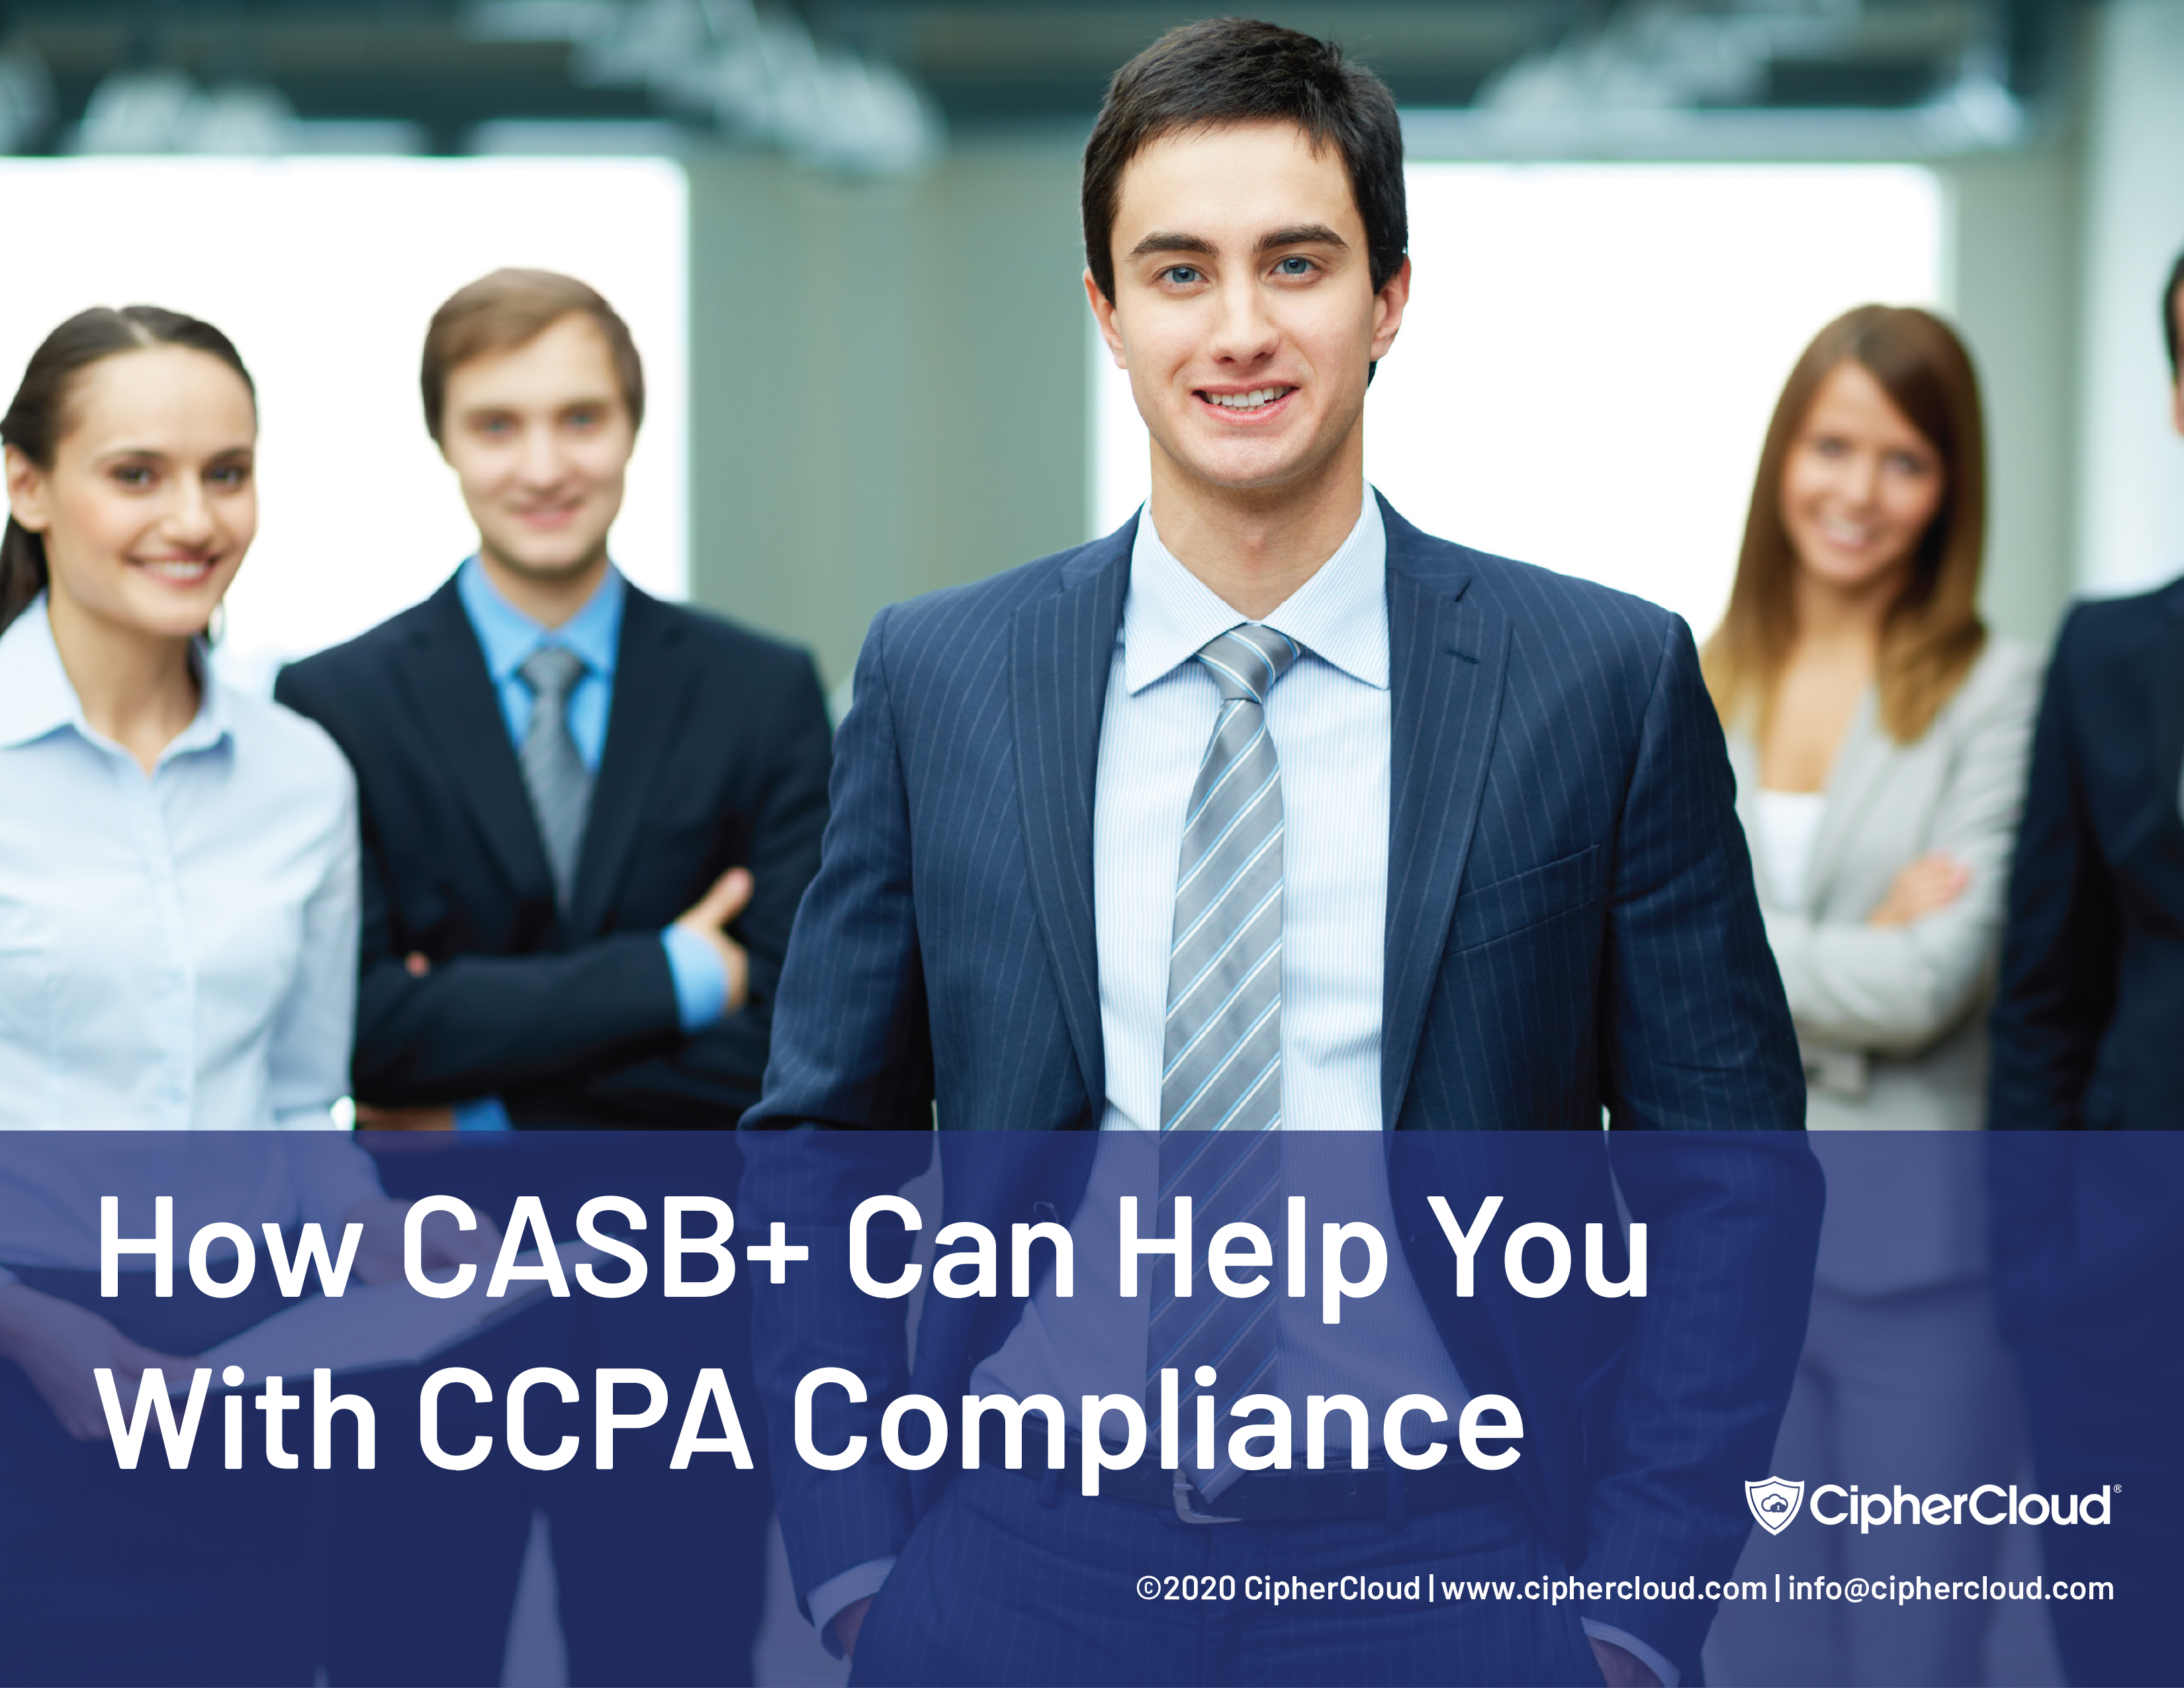 thumbnail-wp-how-casb-can-help-ccpa-compliance